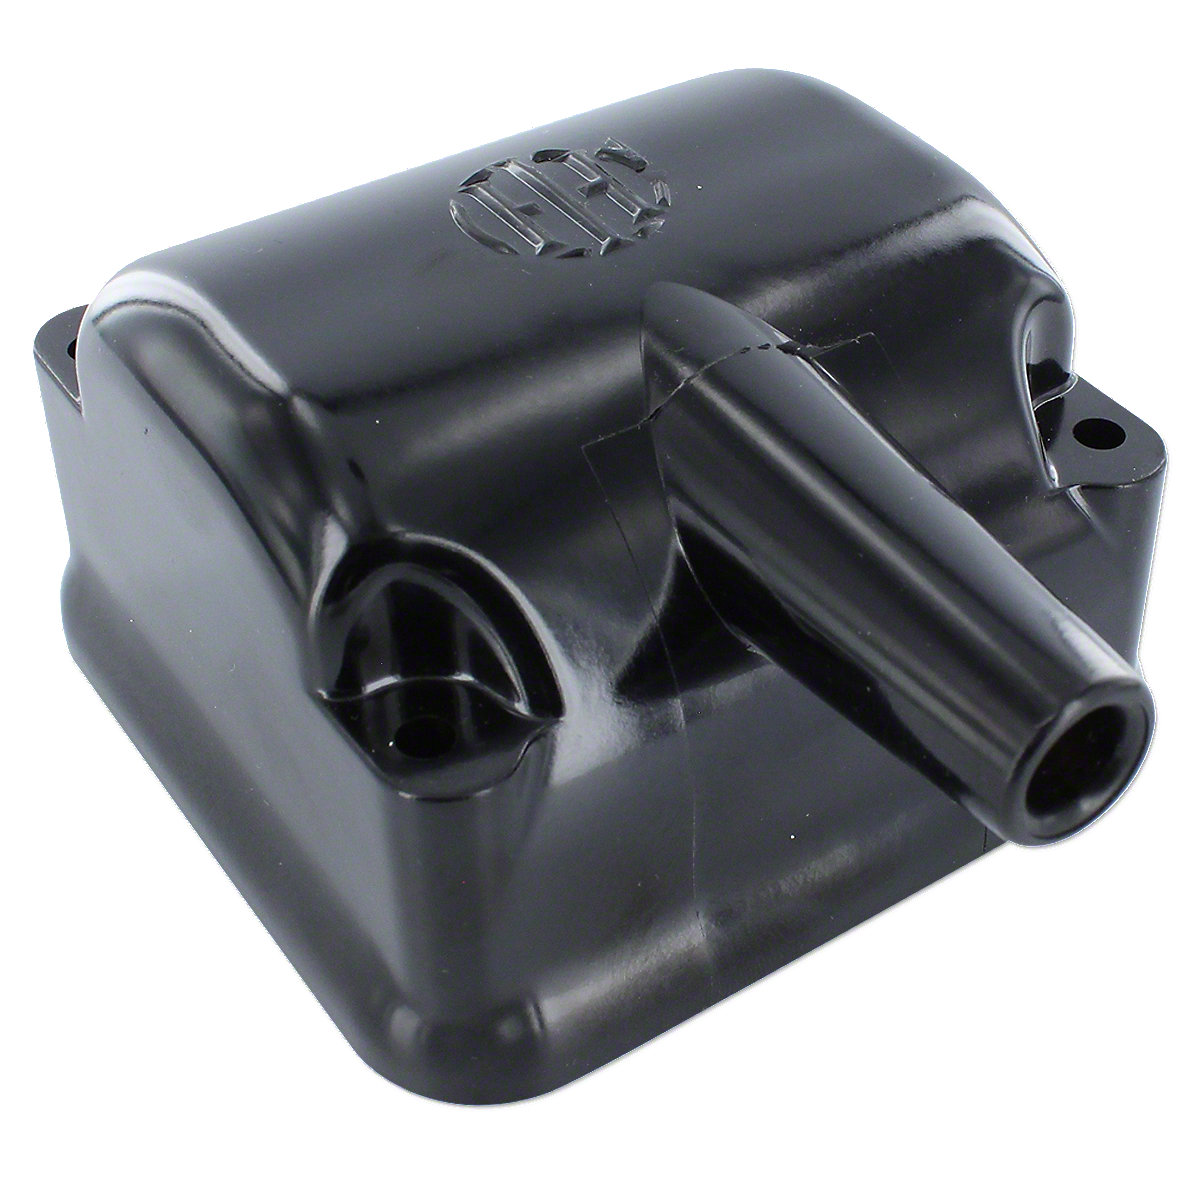 ABC482 H4 Magneto Coil Cover